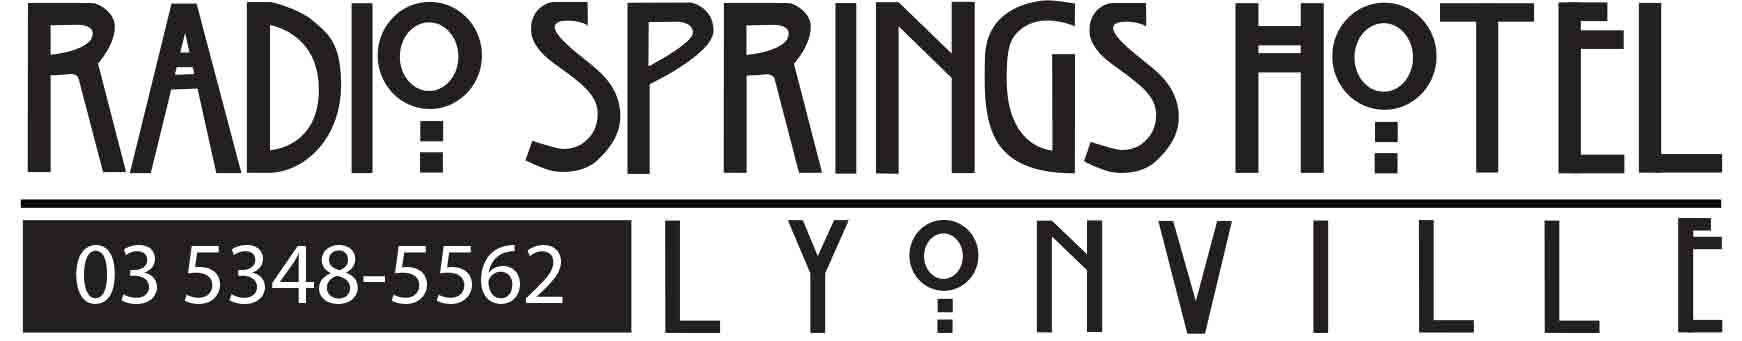 CluneyTunes thanks Radio Springs Hotel for their sponsorship and support of the festival.